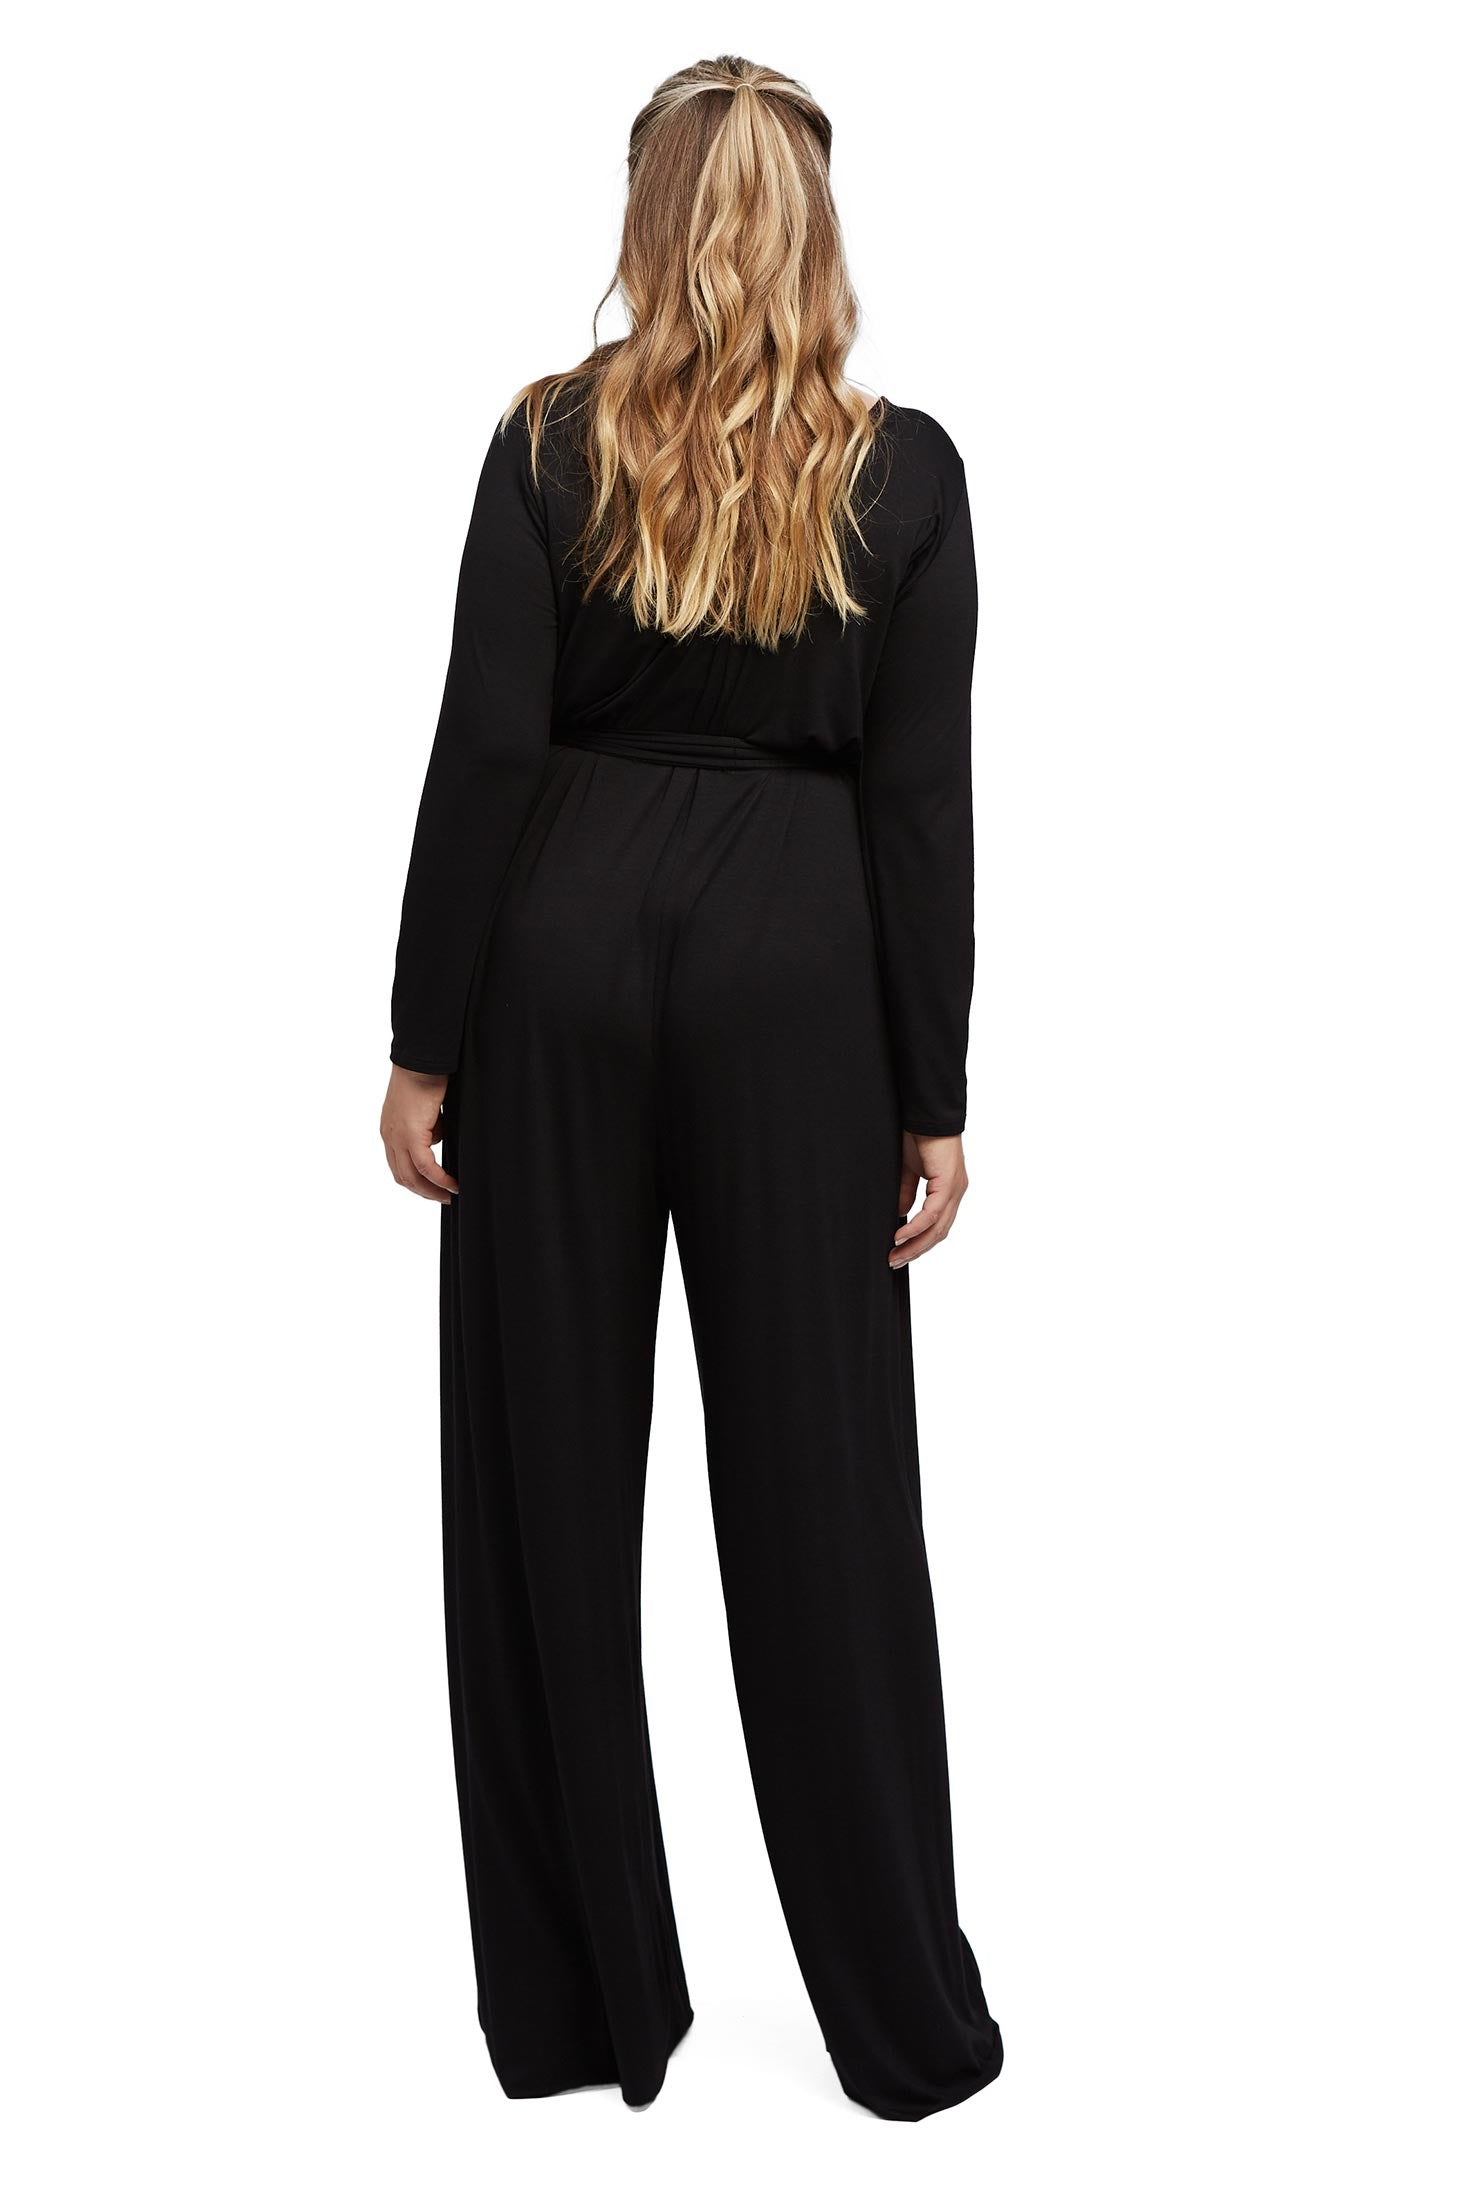 Judith Jumpsuit - Black, Plus Size